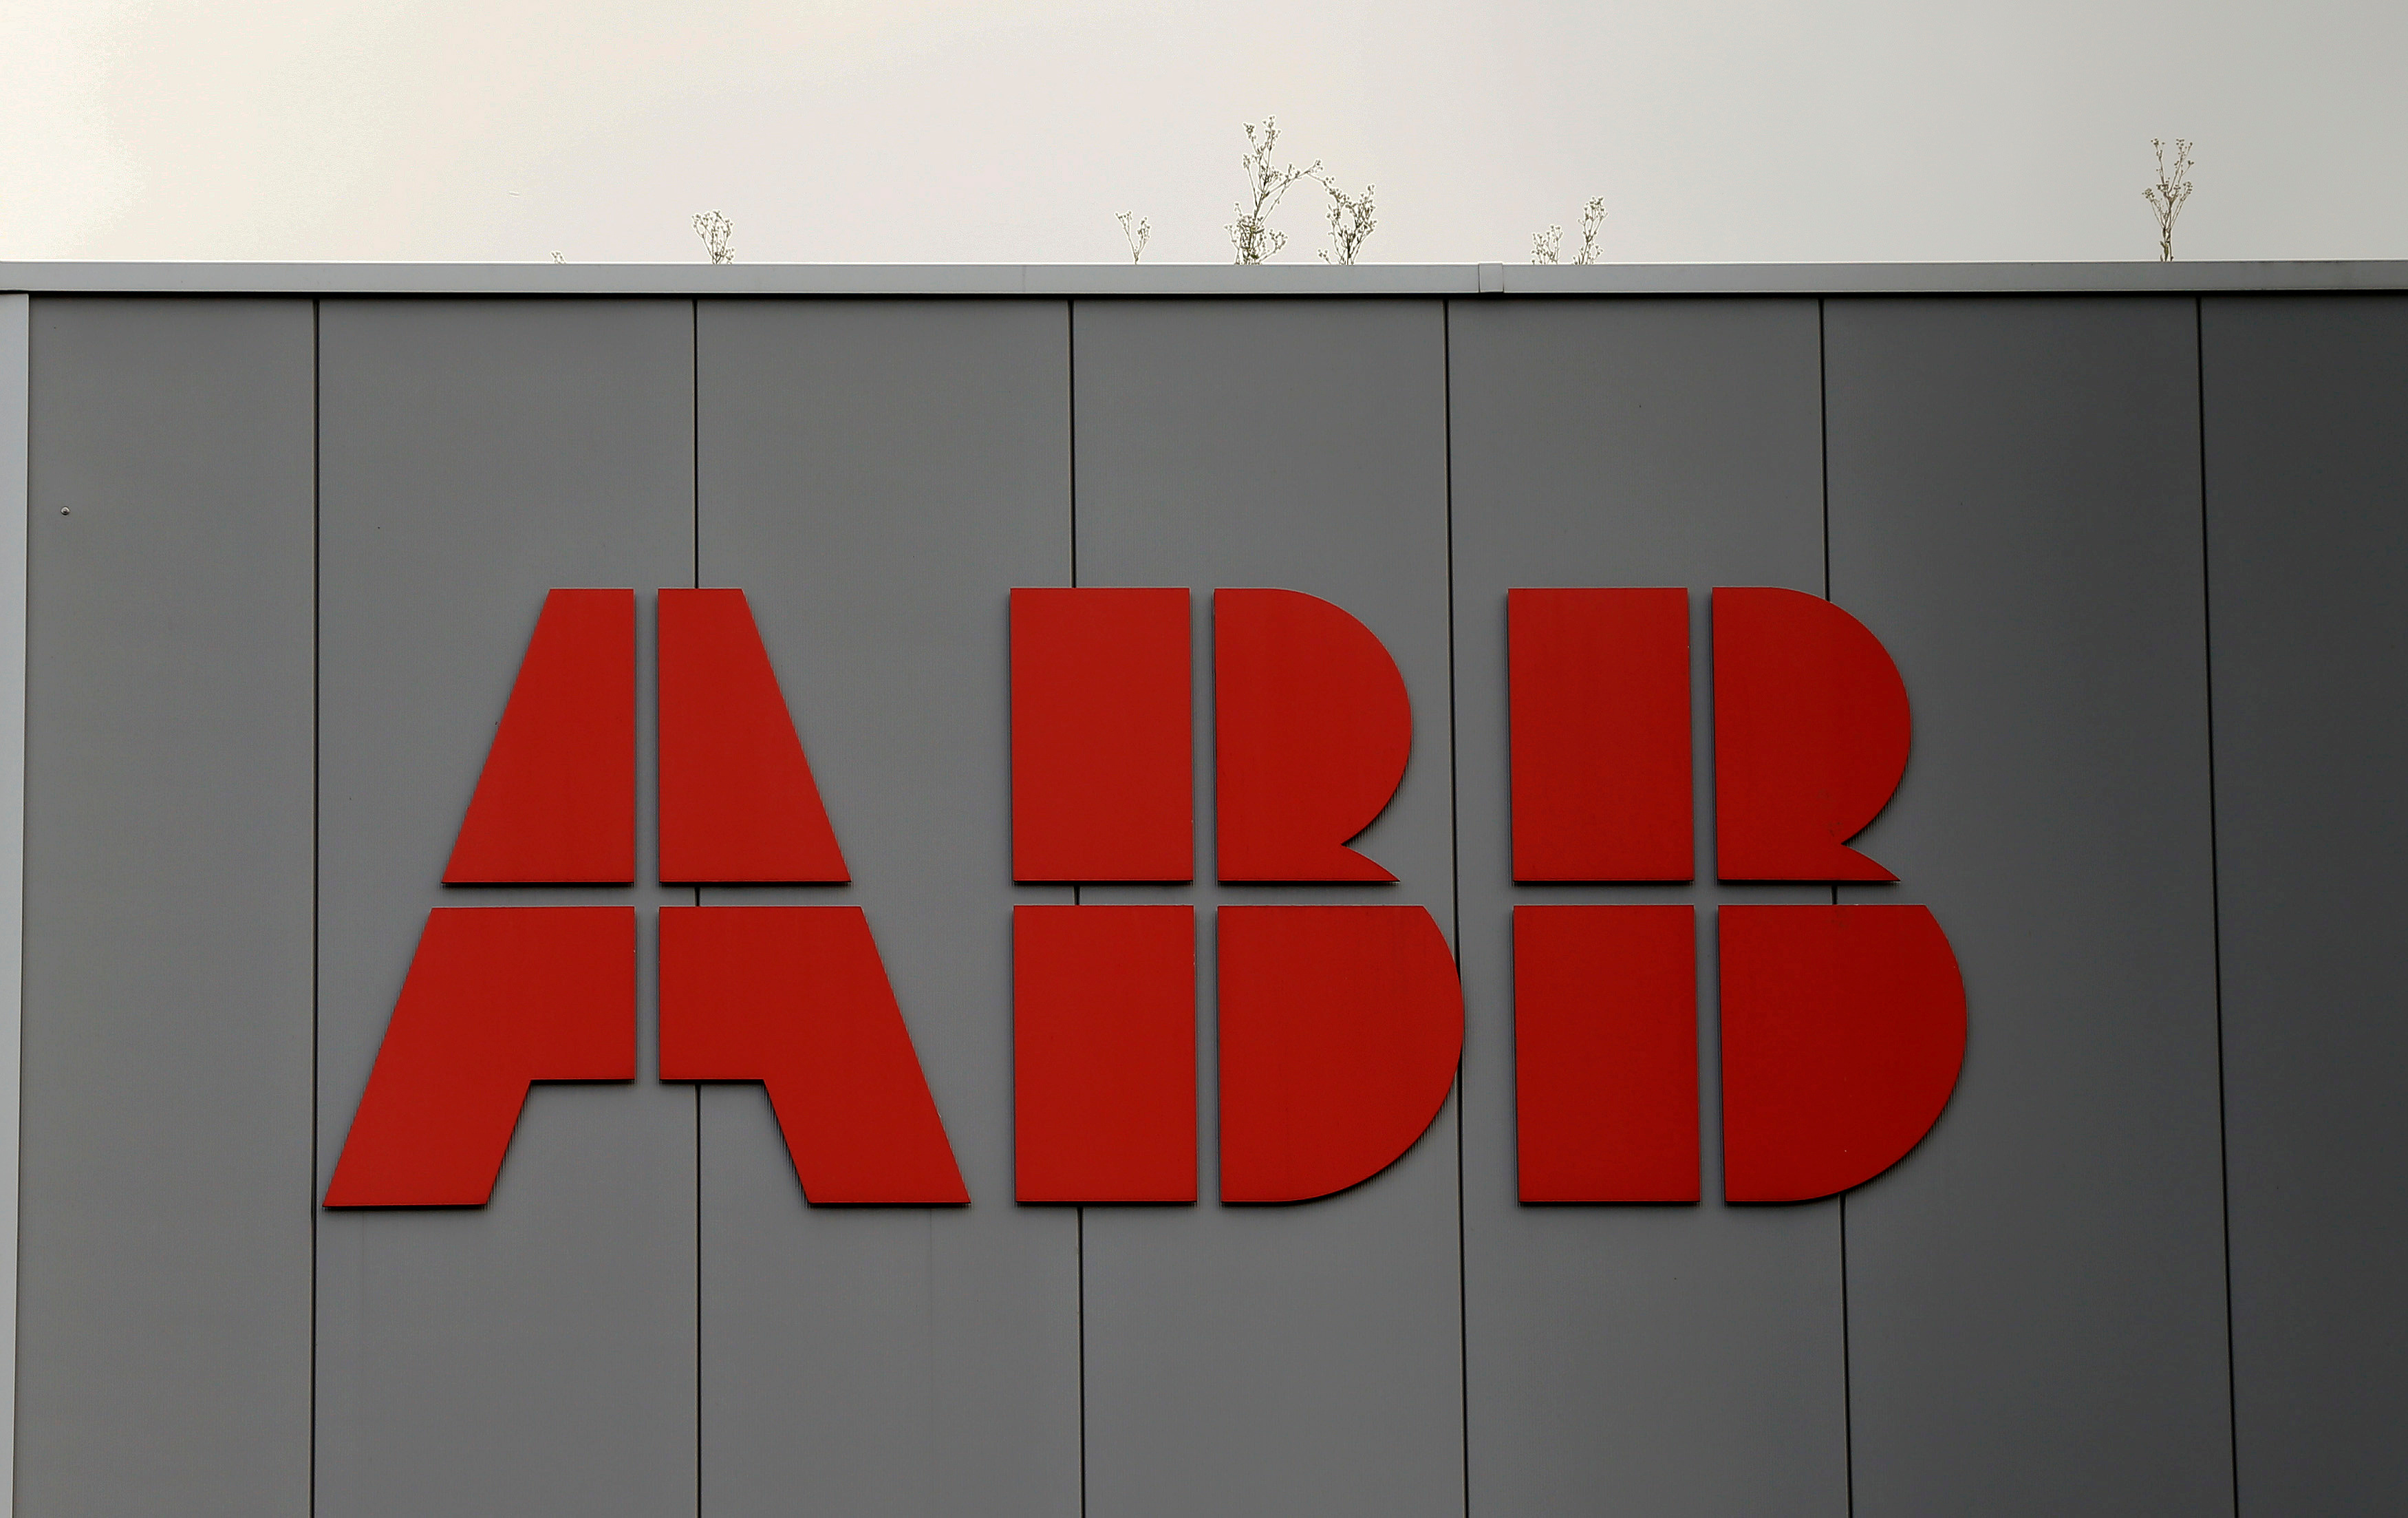 ABB selling its cable business to NKT Cables